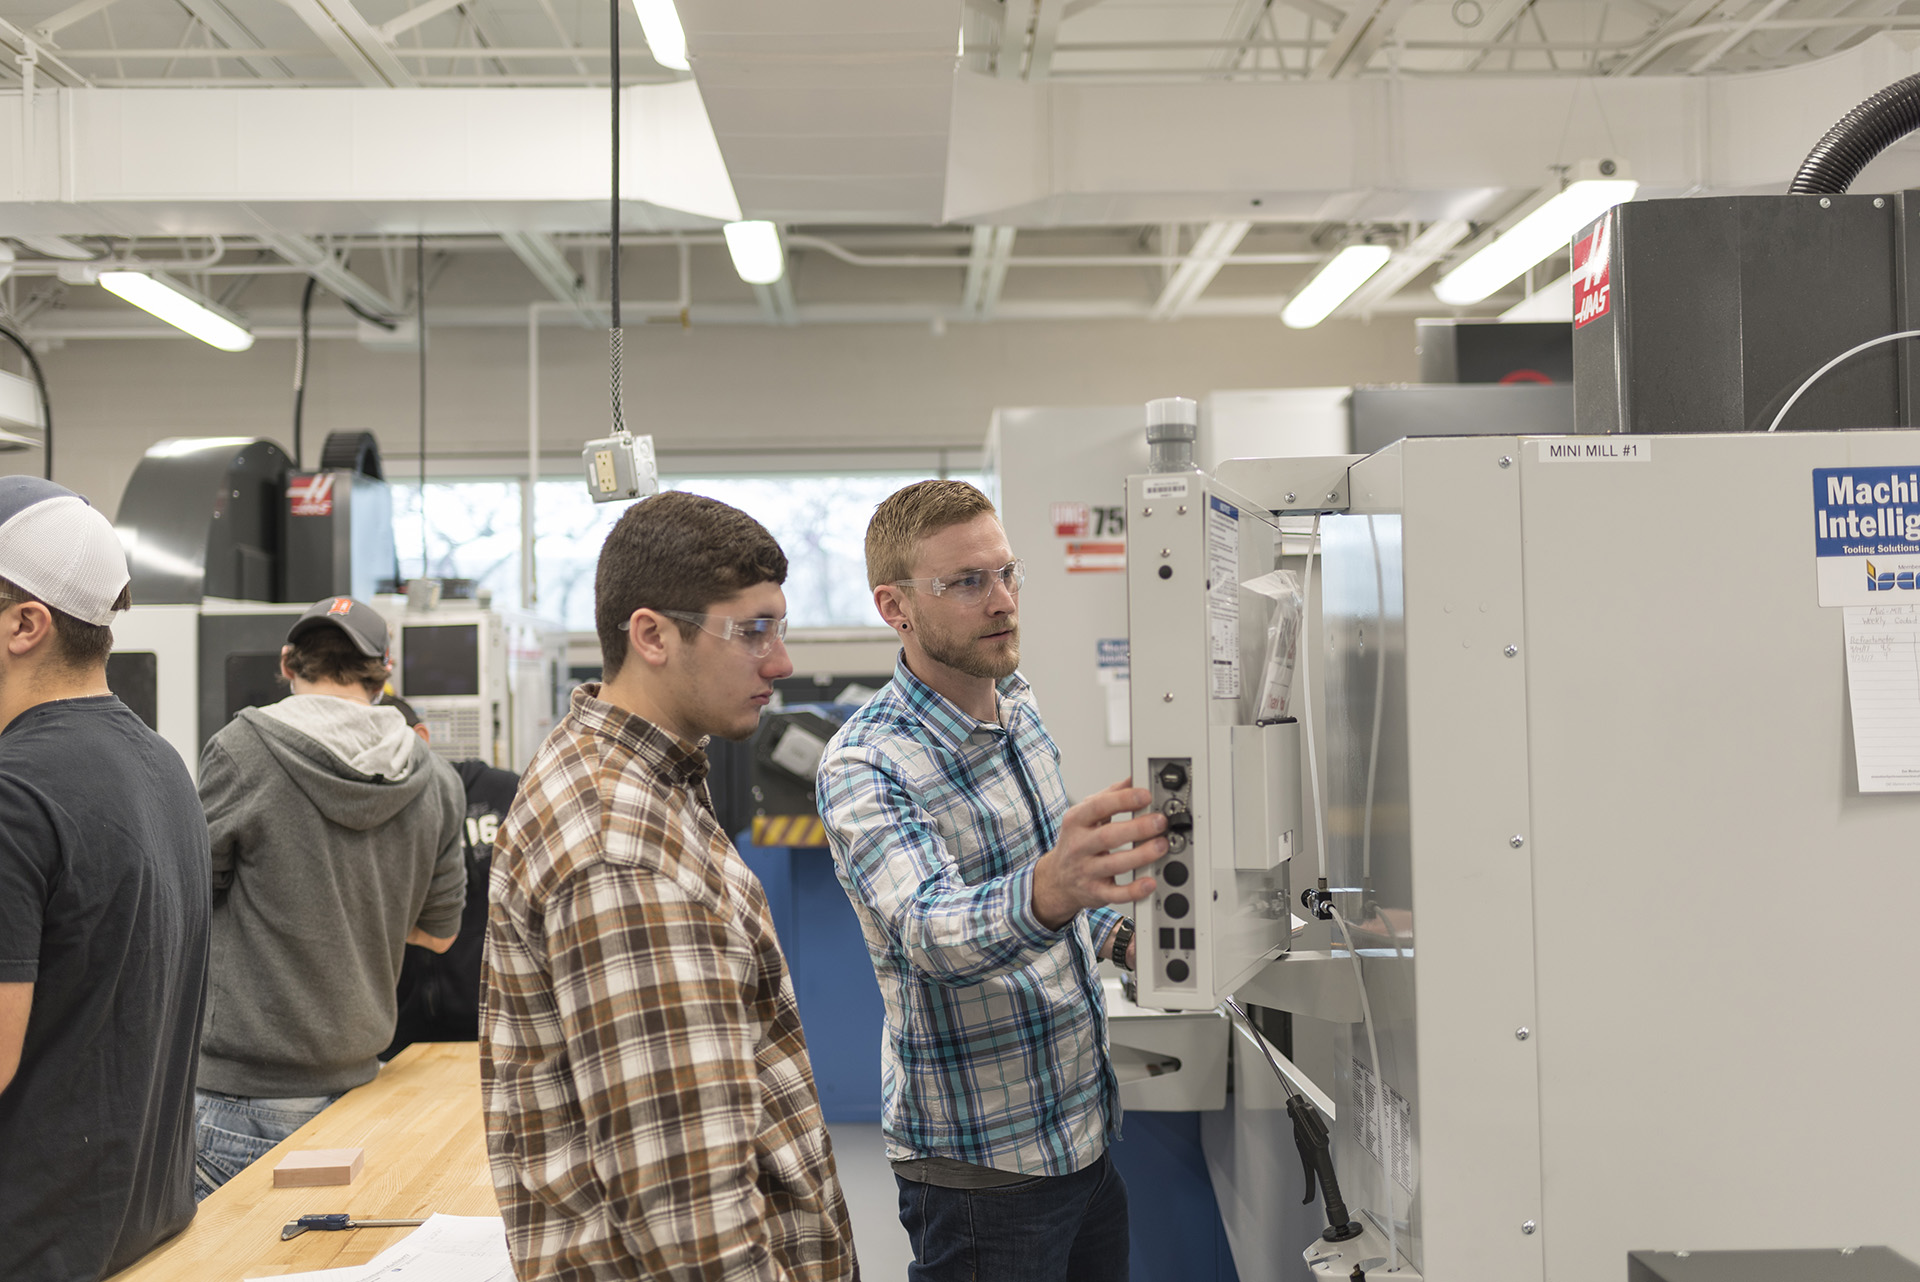 The CNC lab provides a space for students to gain the skills needed to operate computer-driven machines.